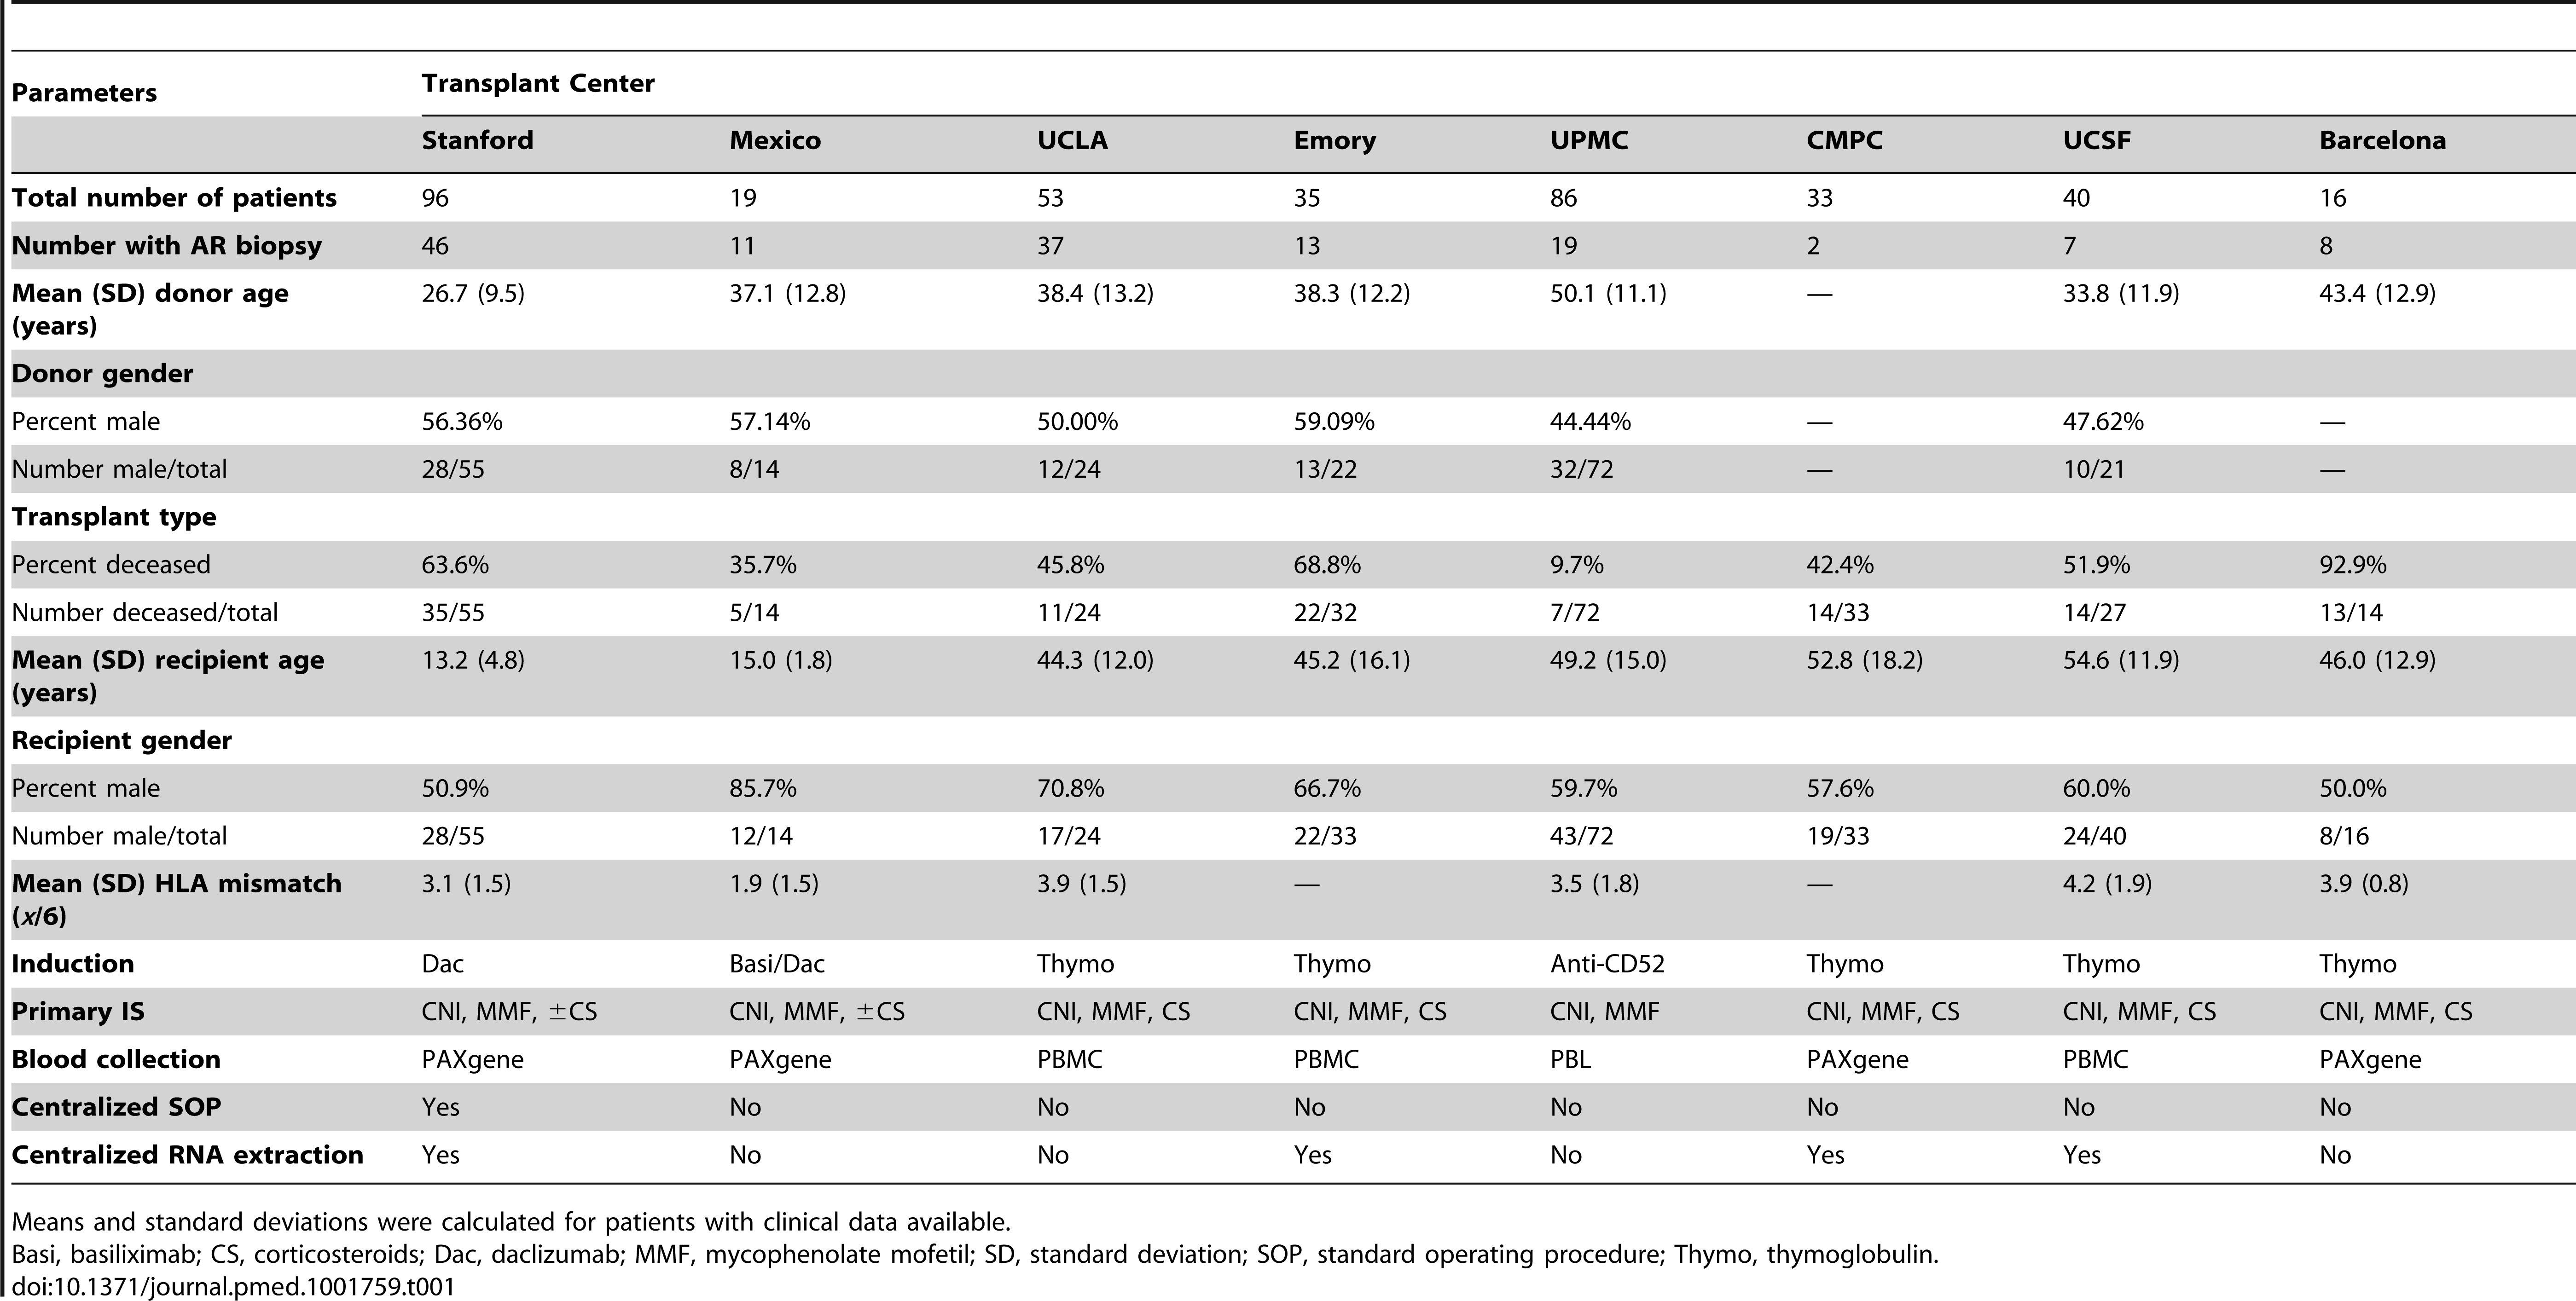 Demographics of unique patients included in the AART Study.